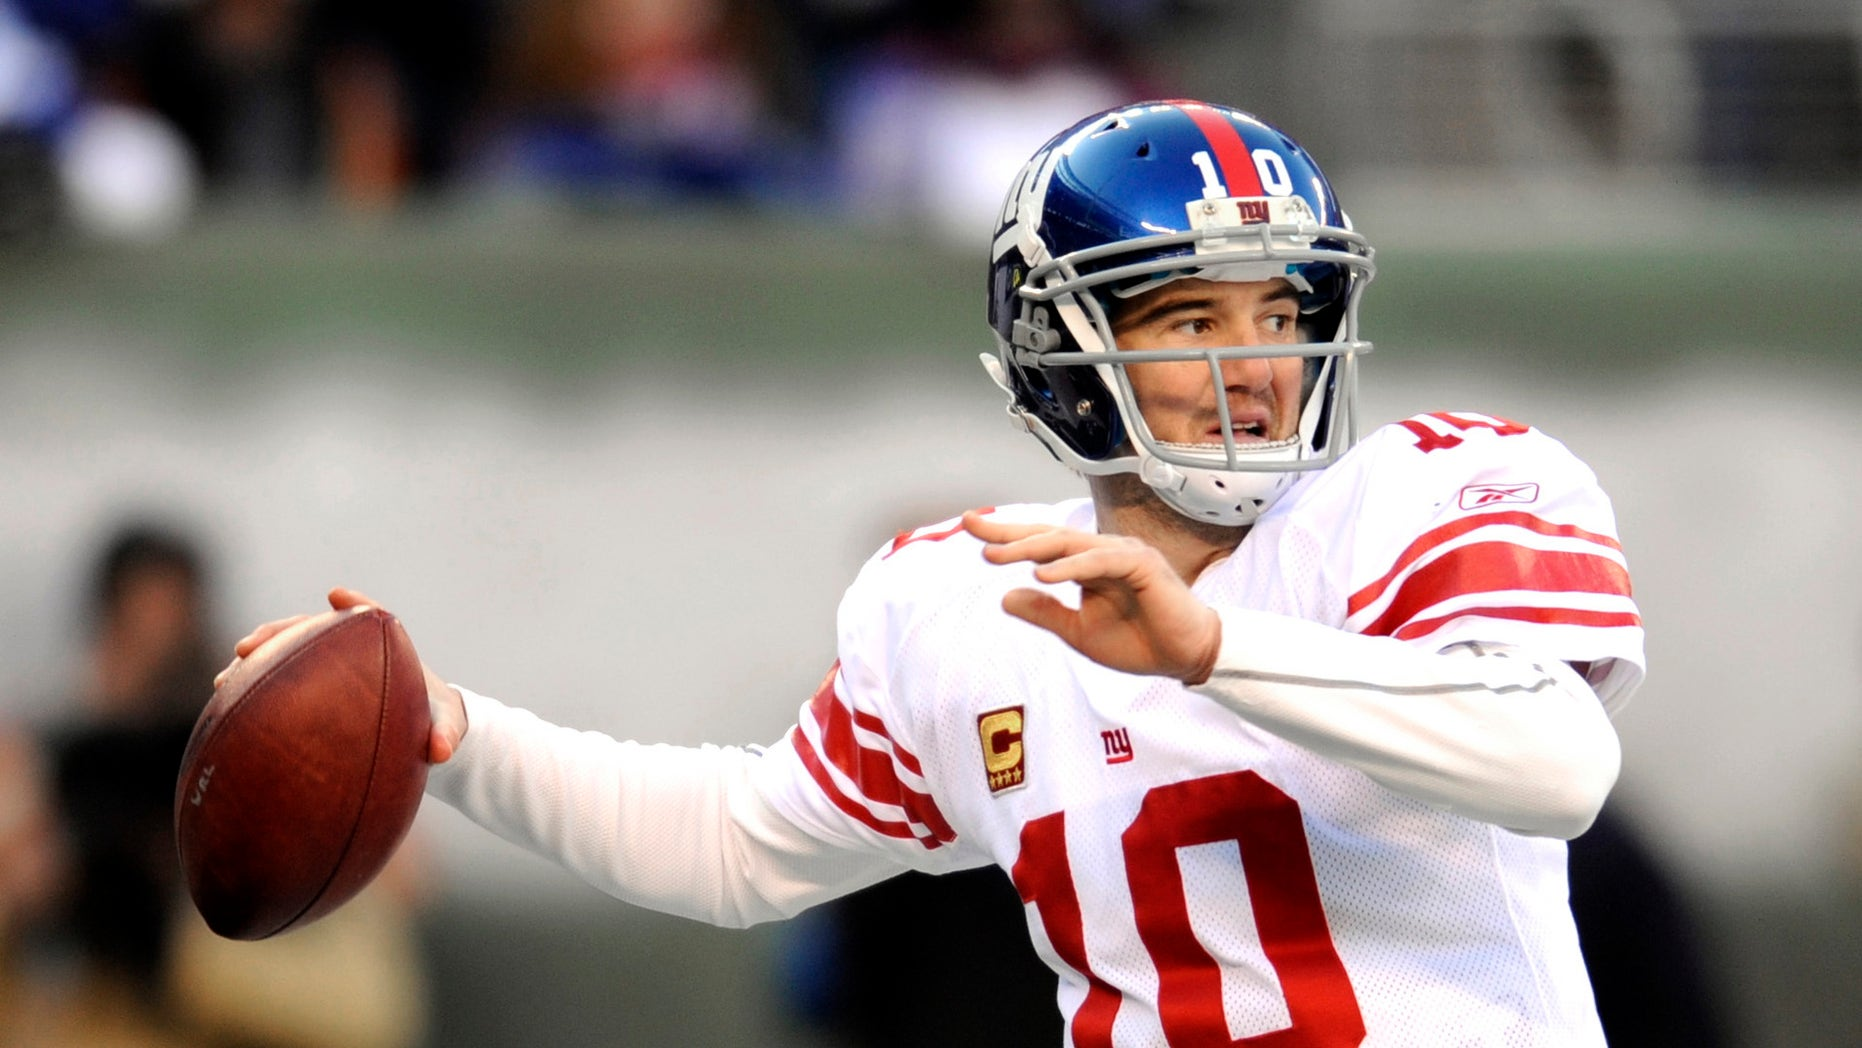 In this Dec. 24, 2011, file photo, New York Giants quarterback Eli Manning looks to pass during the second quarter of an NFL football game against the New York Jets, in East Rutherford, N.J.